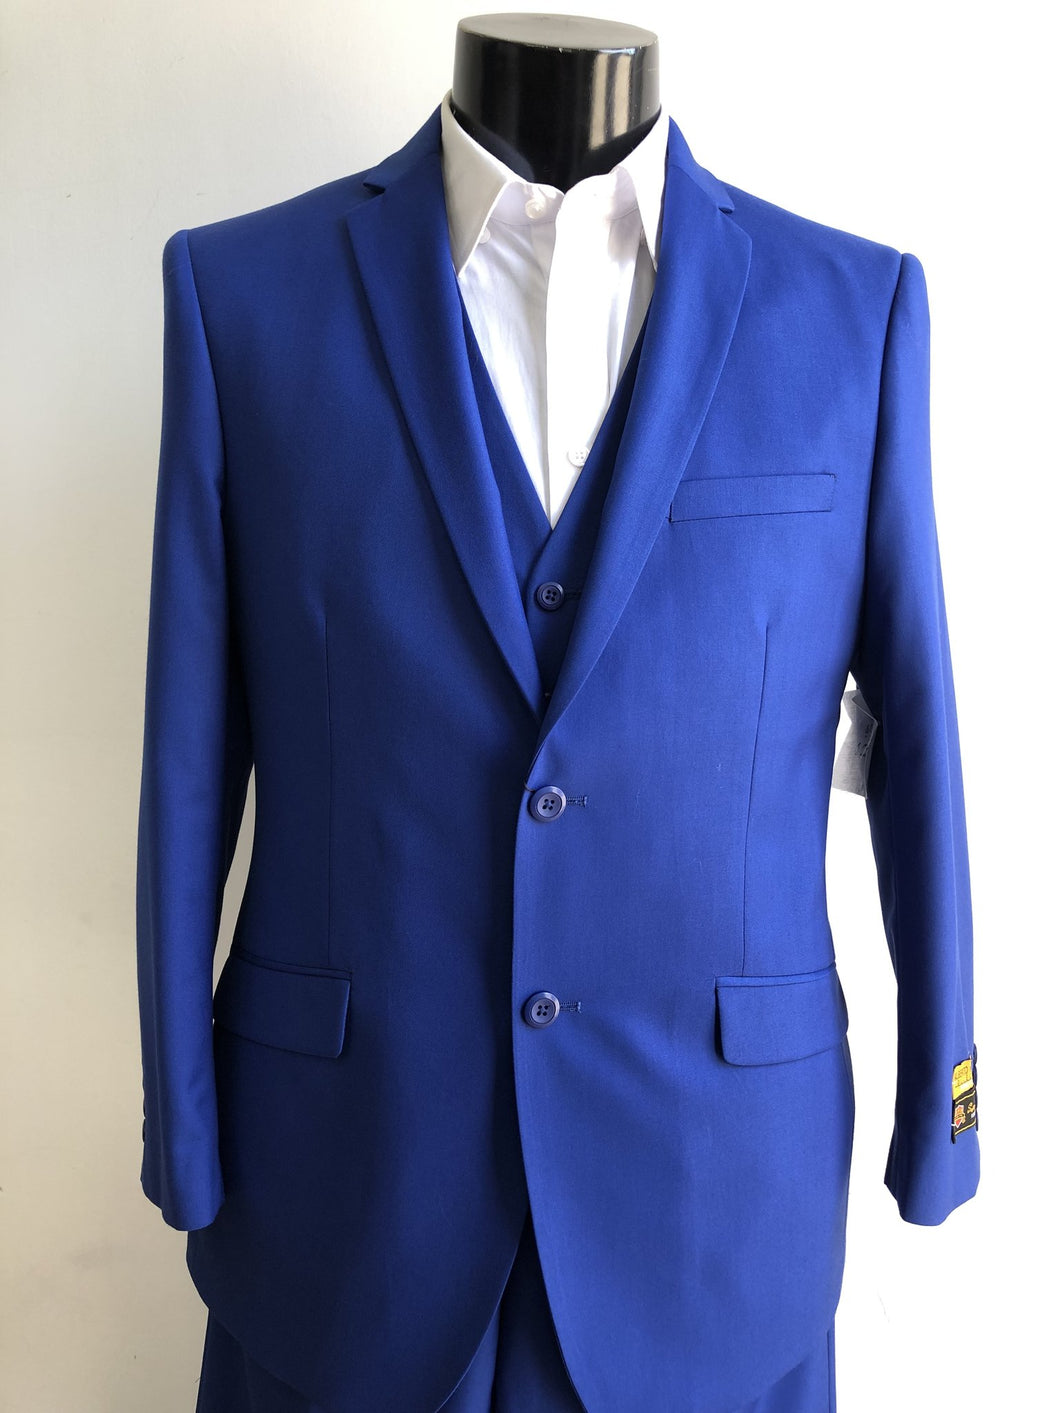 Mens Cobalt Suits Downtown Los angeles - Suits LA $149